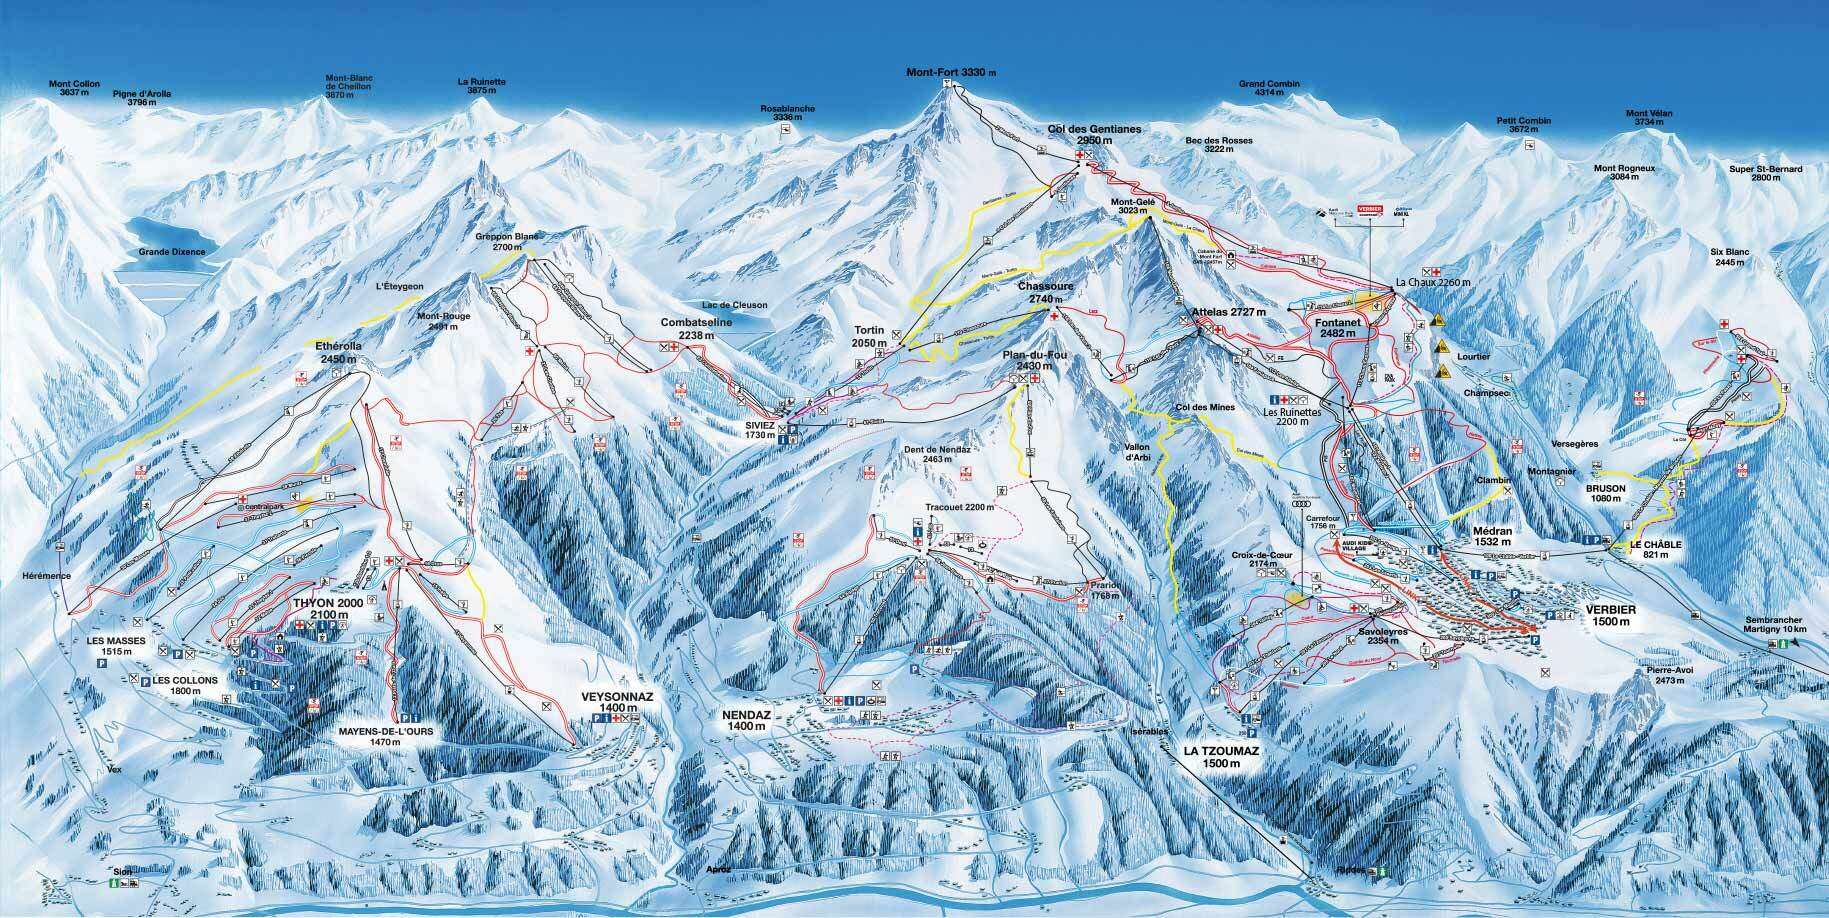 Verbier Ski Resort Guide Location Map Verbier ski holiday